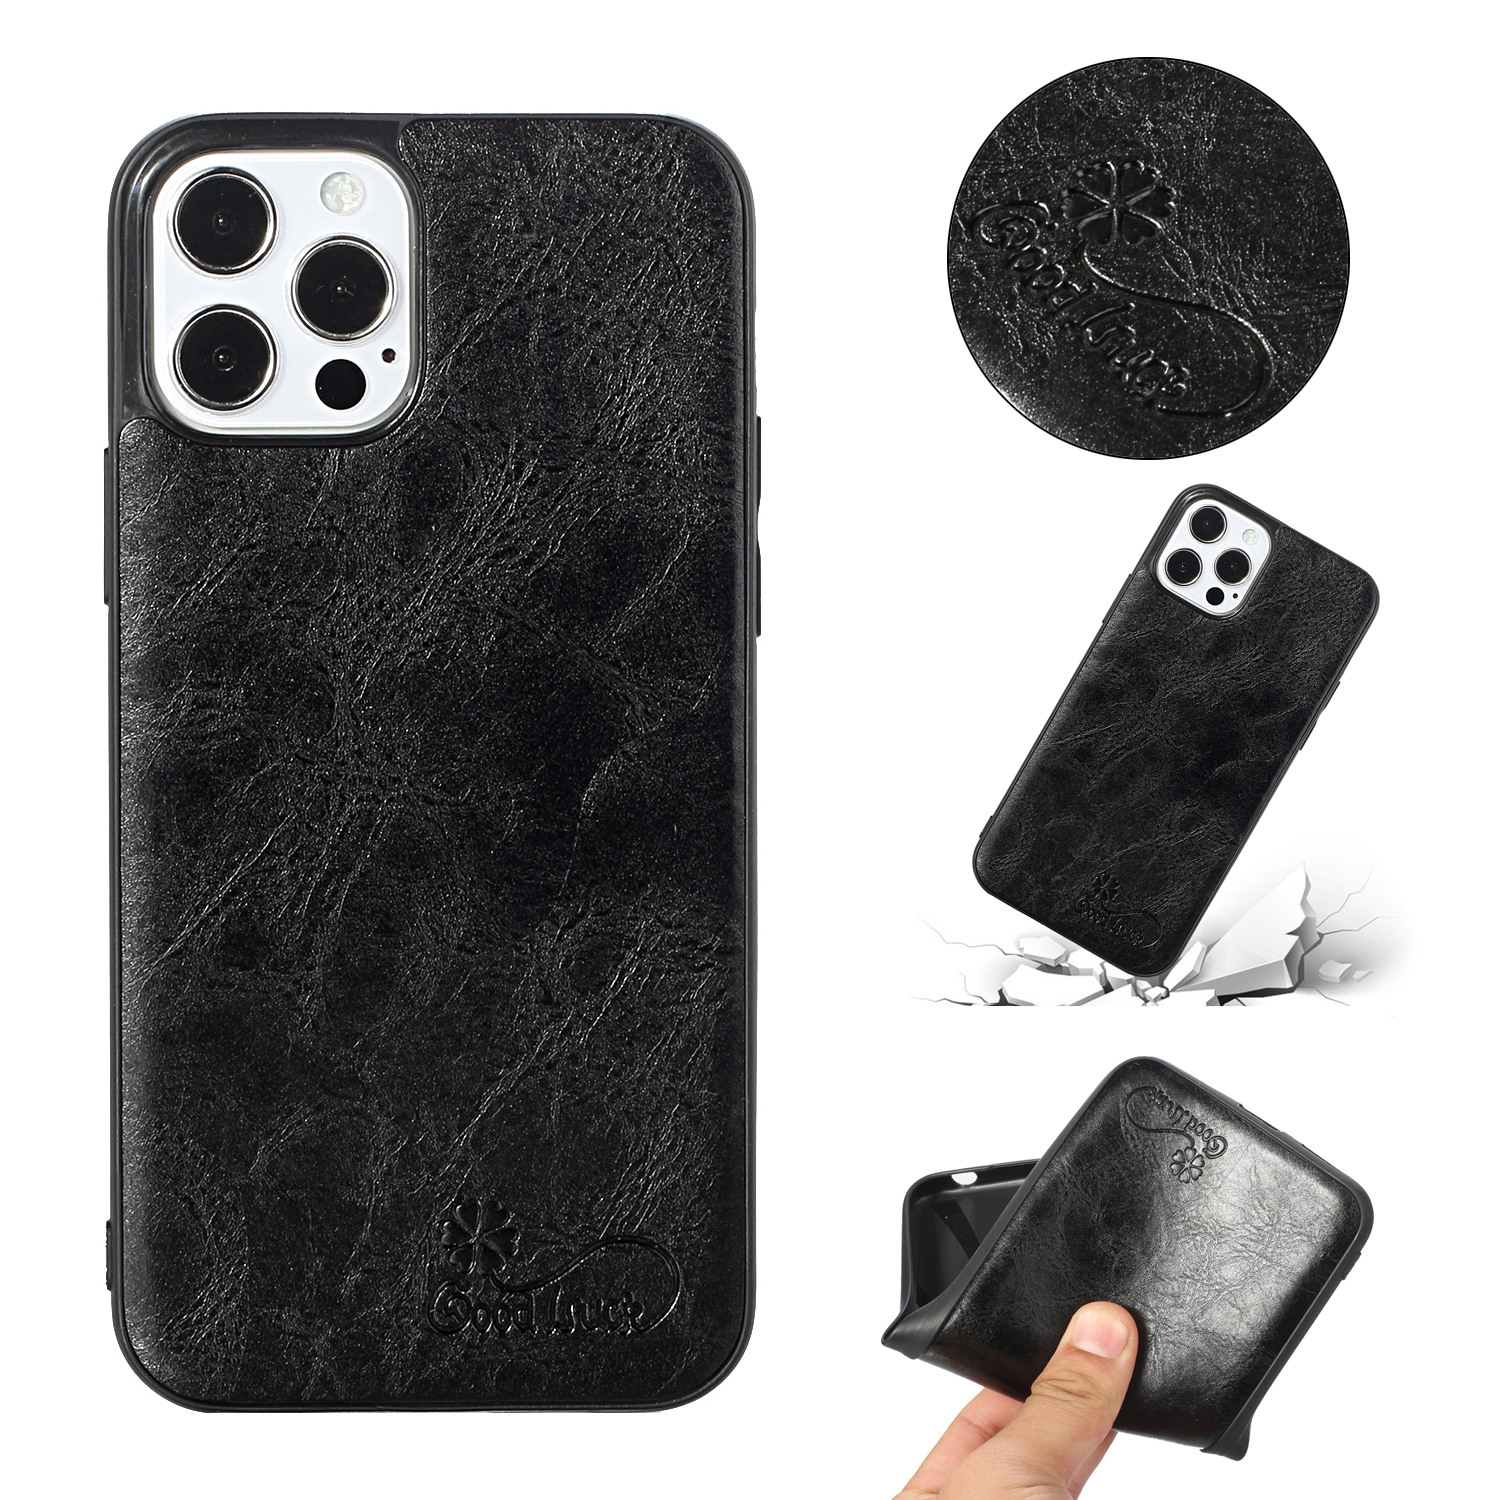 For Iphone 12 Pro Max Mobile Phone Cover Pu Waxed Leather Protective Soft Case black